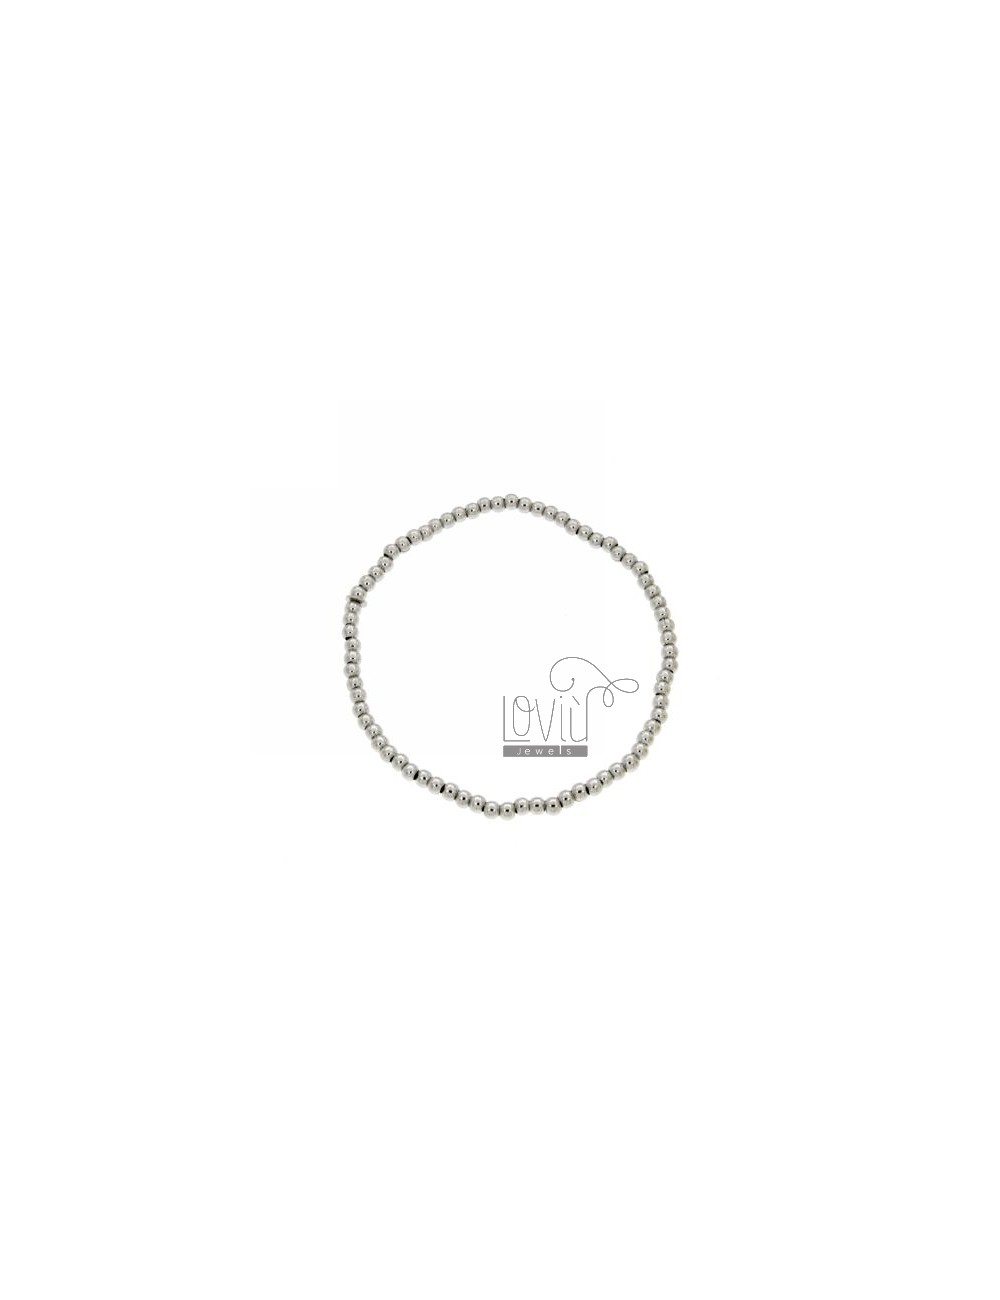 BRACELET WITH BALL SPRING 3 MM SILVER RHODIUM 925 ‰